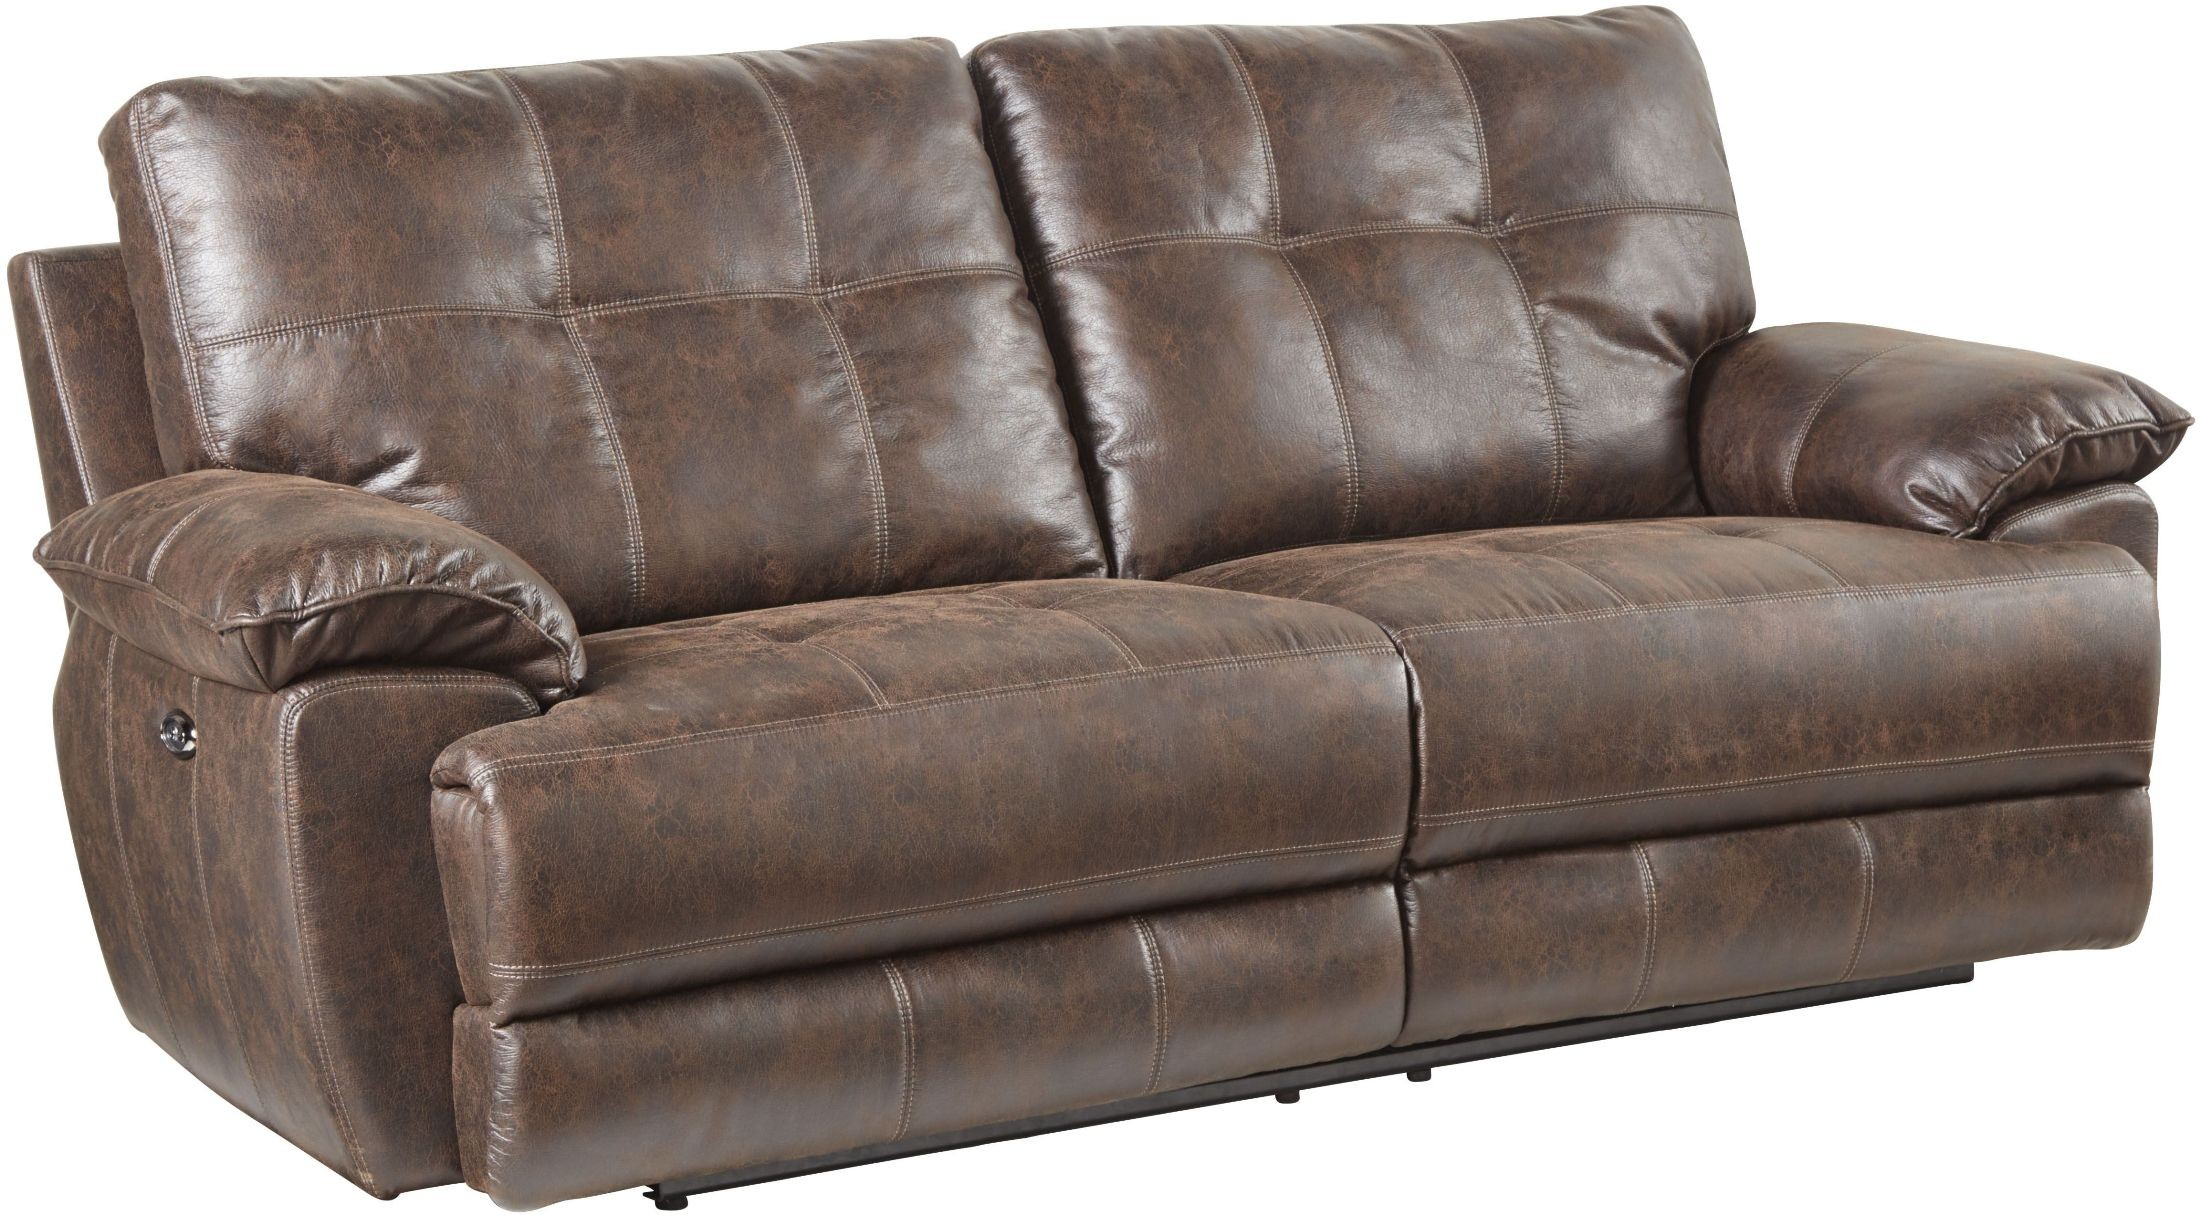 Hollister Brown Reclining Sofa From Standard Furniture Coleman  ~ Traditional Reclining Sofa